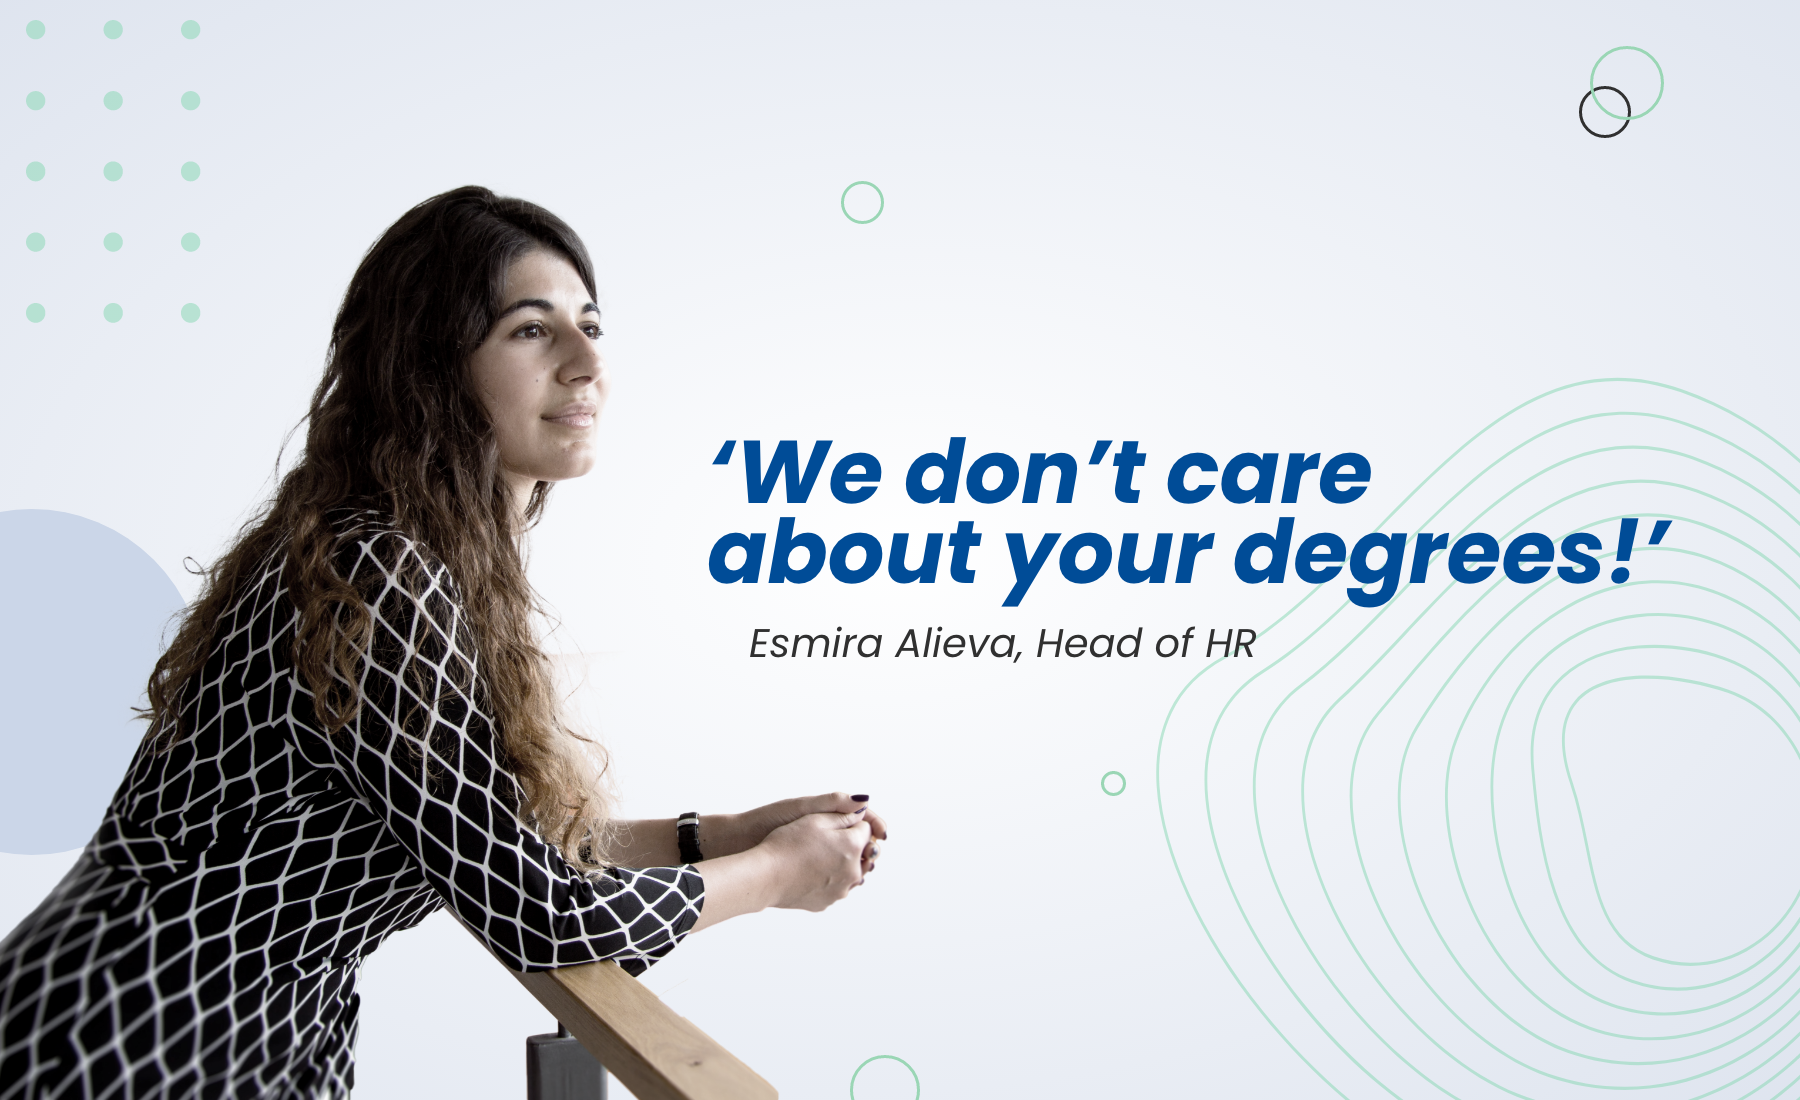 We don't care about your degrees!